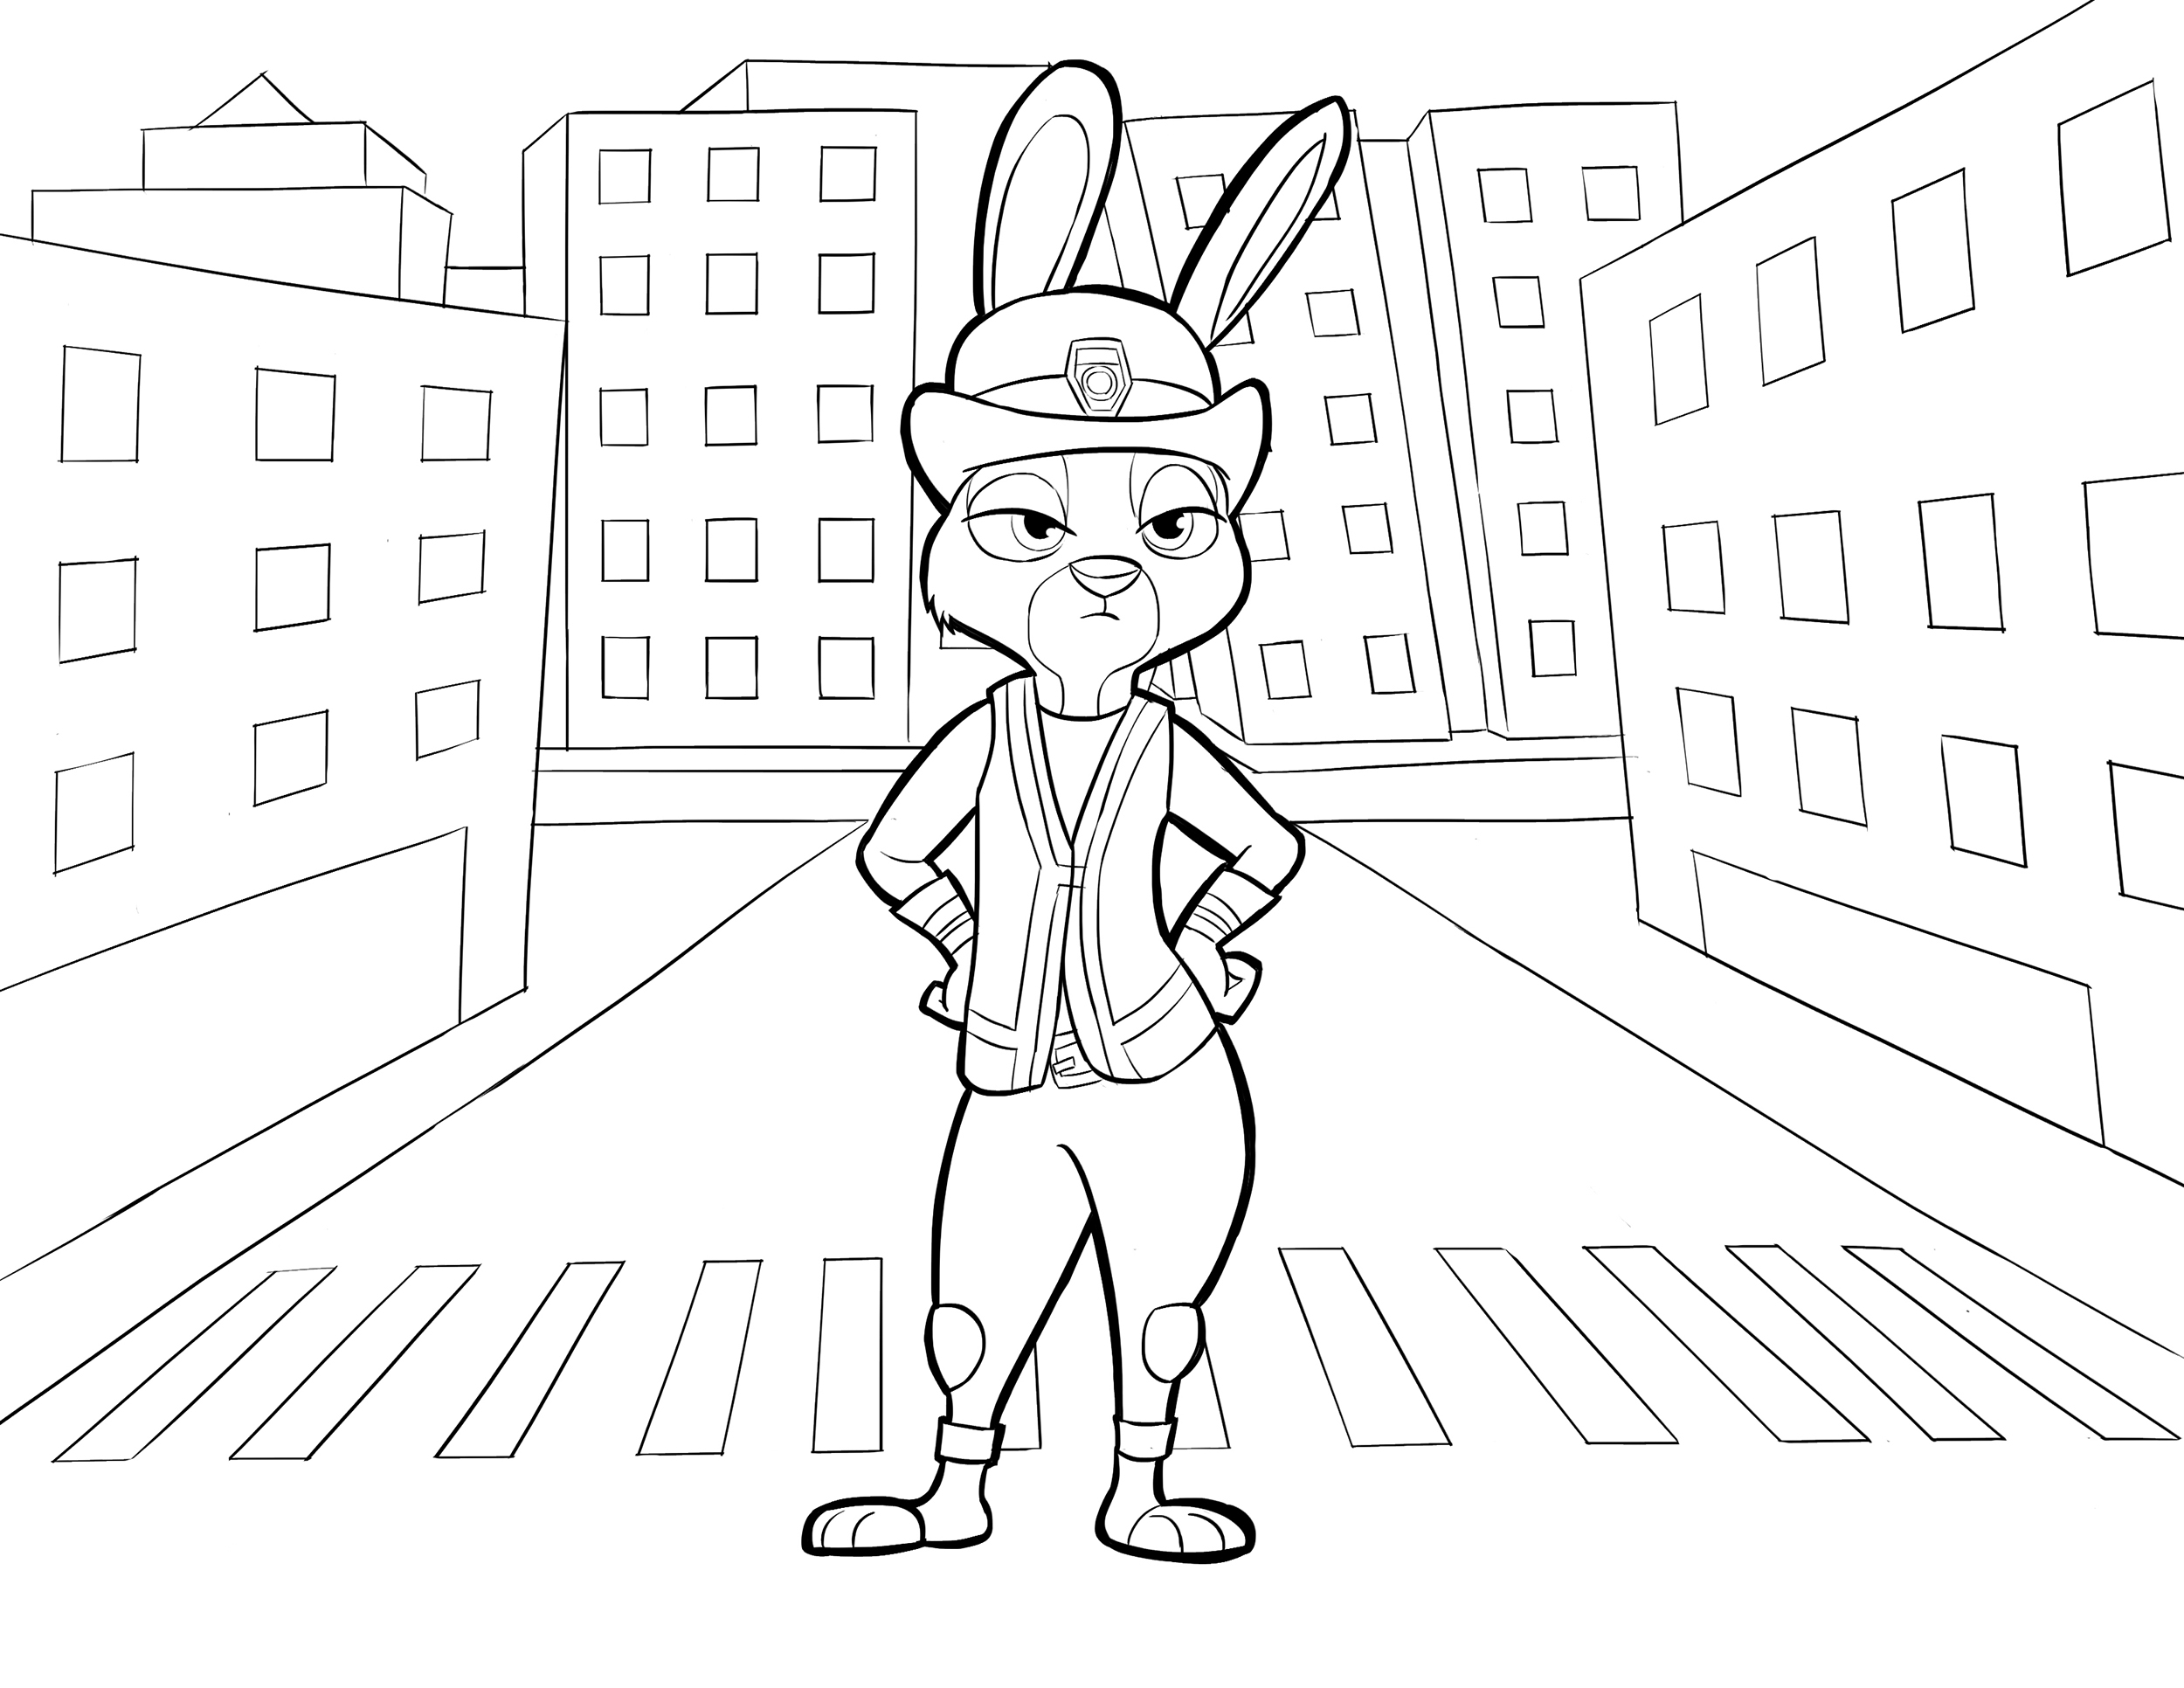 Incredible Zootopia coloring page to print and color for free : Judy Hopps in the street